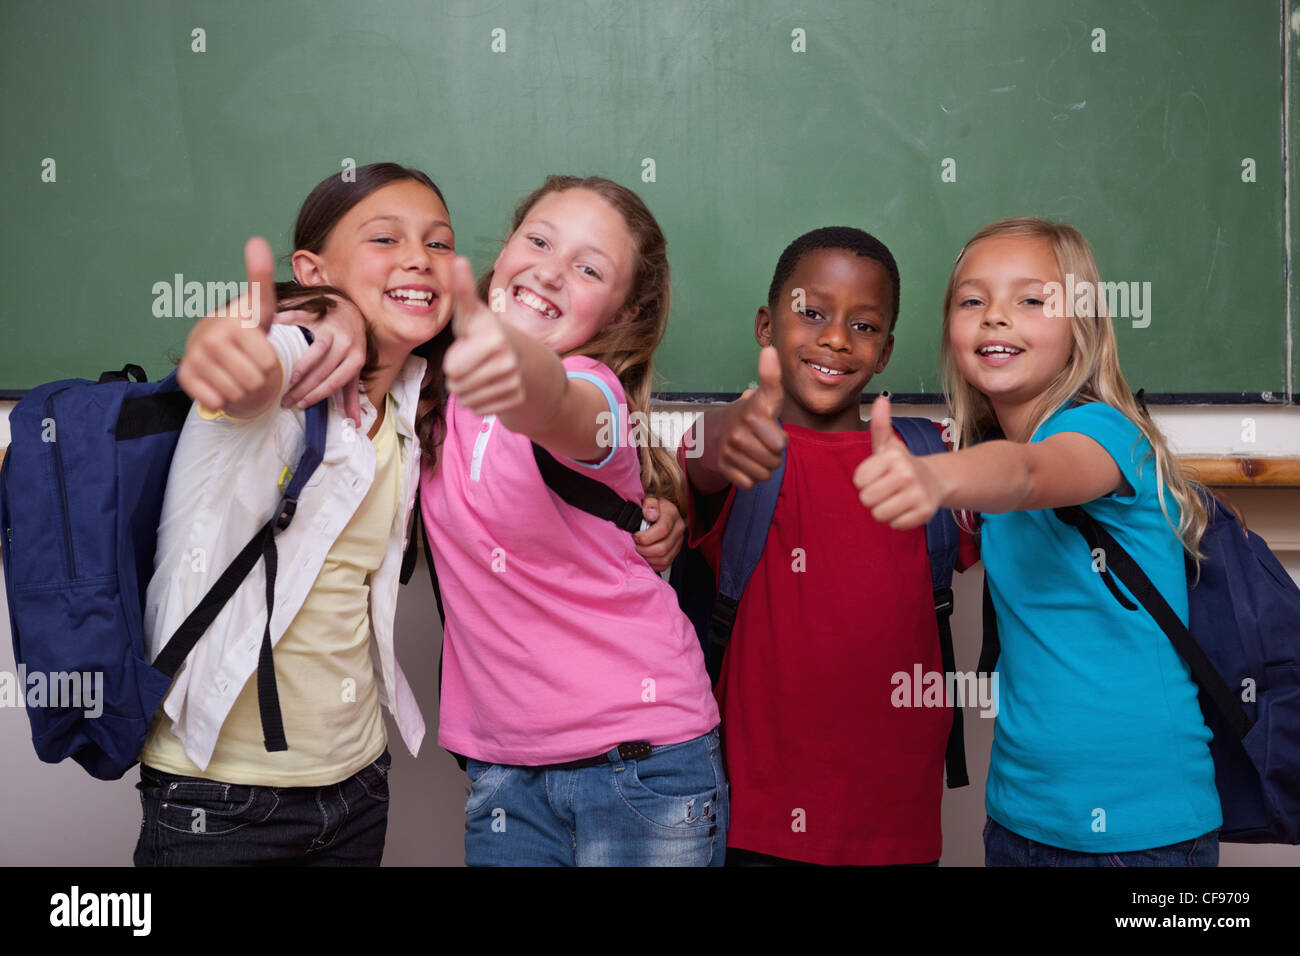 Classmates posing with the thumb up - Stock Image